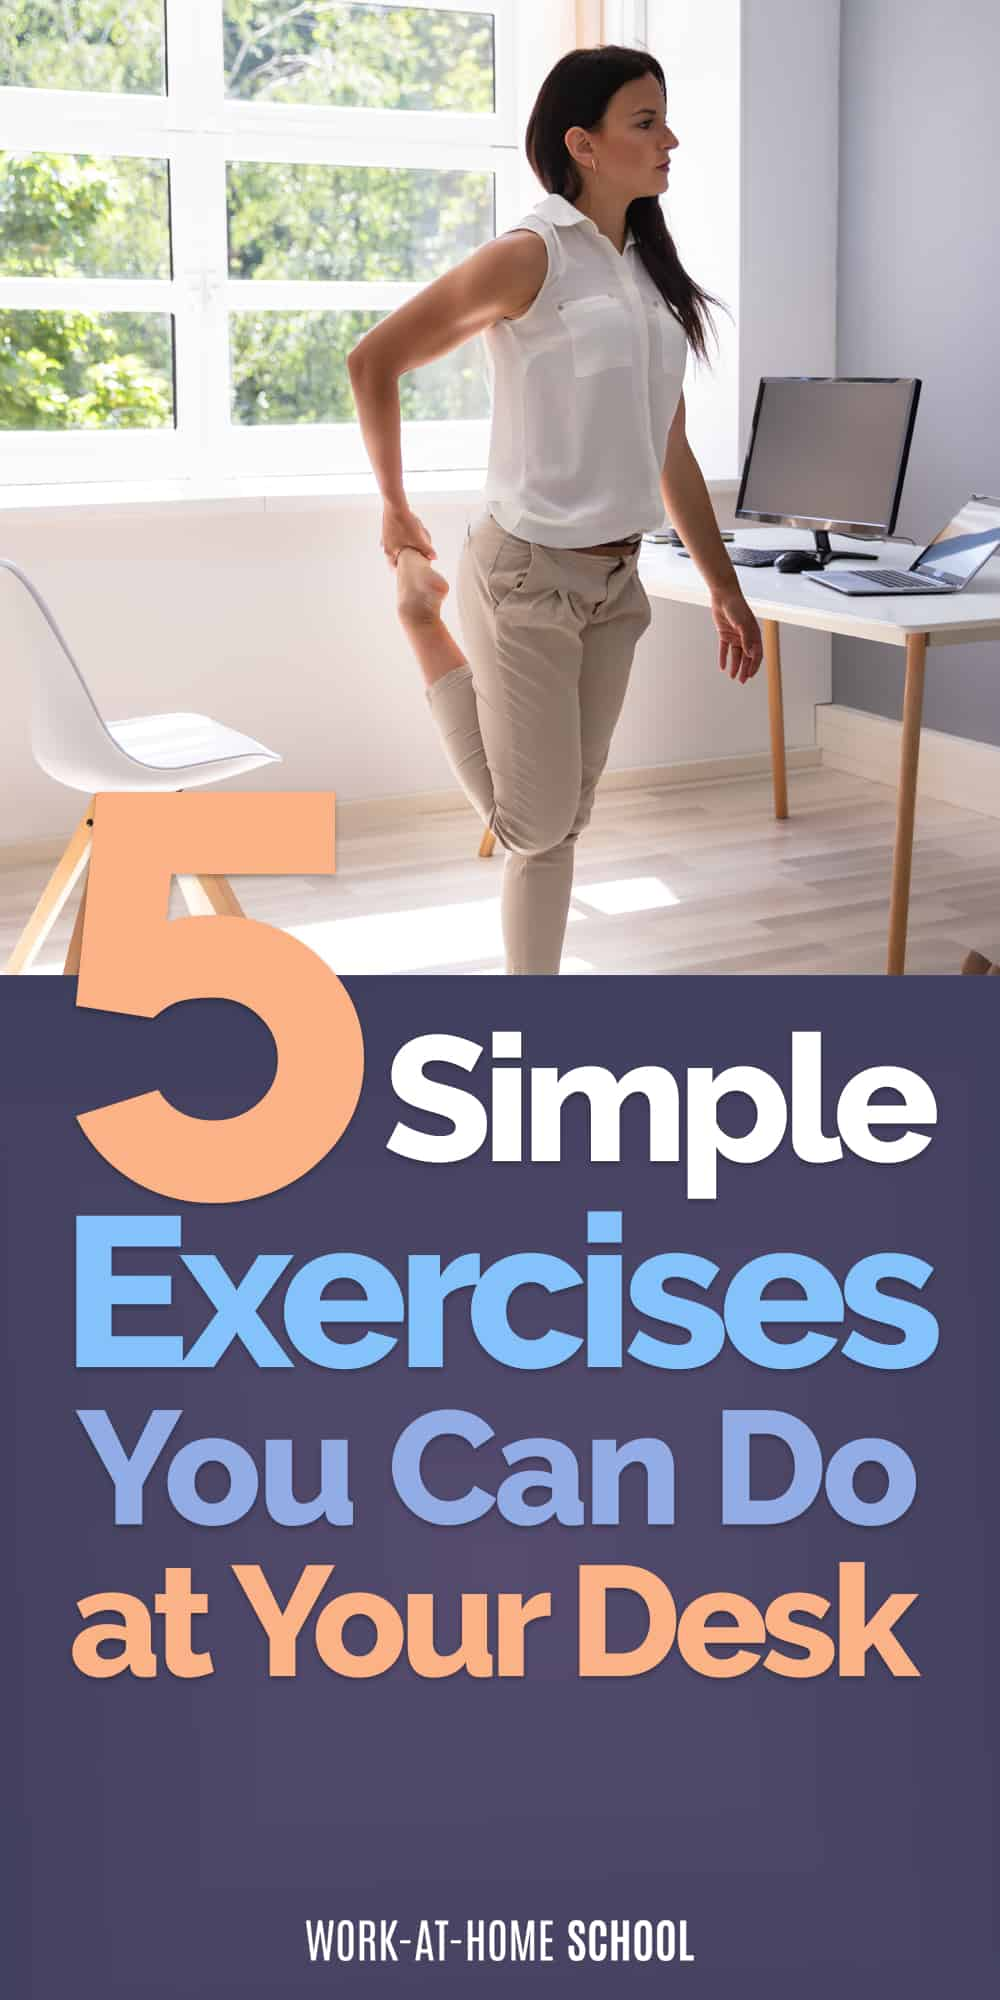 You don't need to spend hours in the gym! Try these 5 simple desk exercises to help you stay fit.